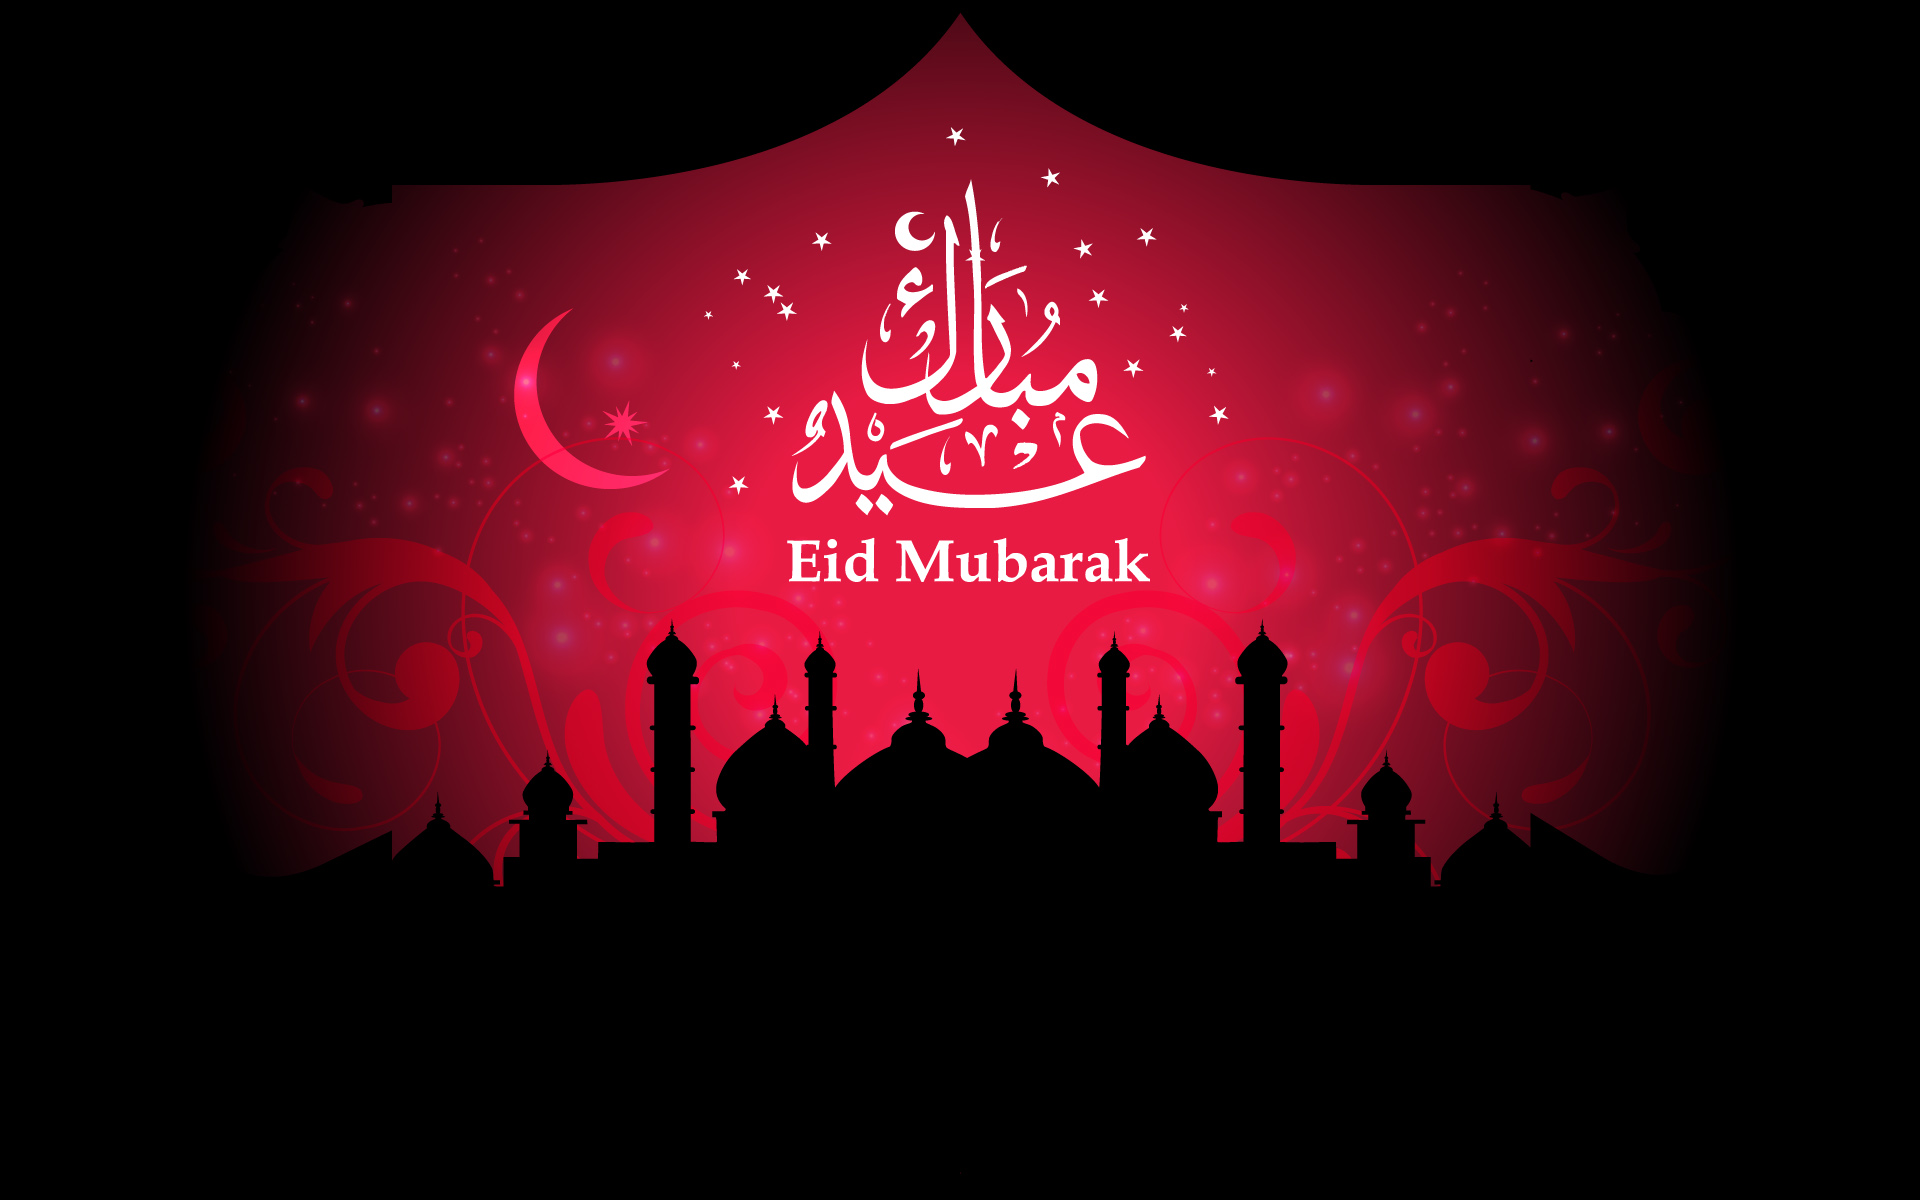 Eid mubarak wishes messages sms quotes in hindi urdu eid mubarak wishes messages sms quotes in hindi urdu malayalam 2017 m4hsunfo